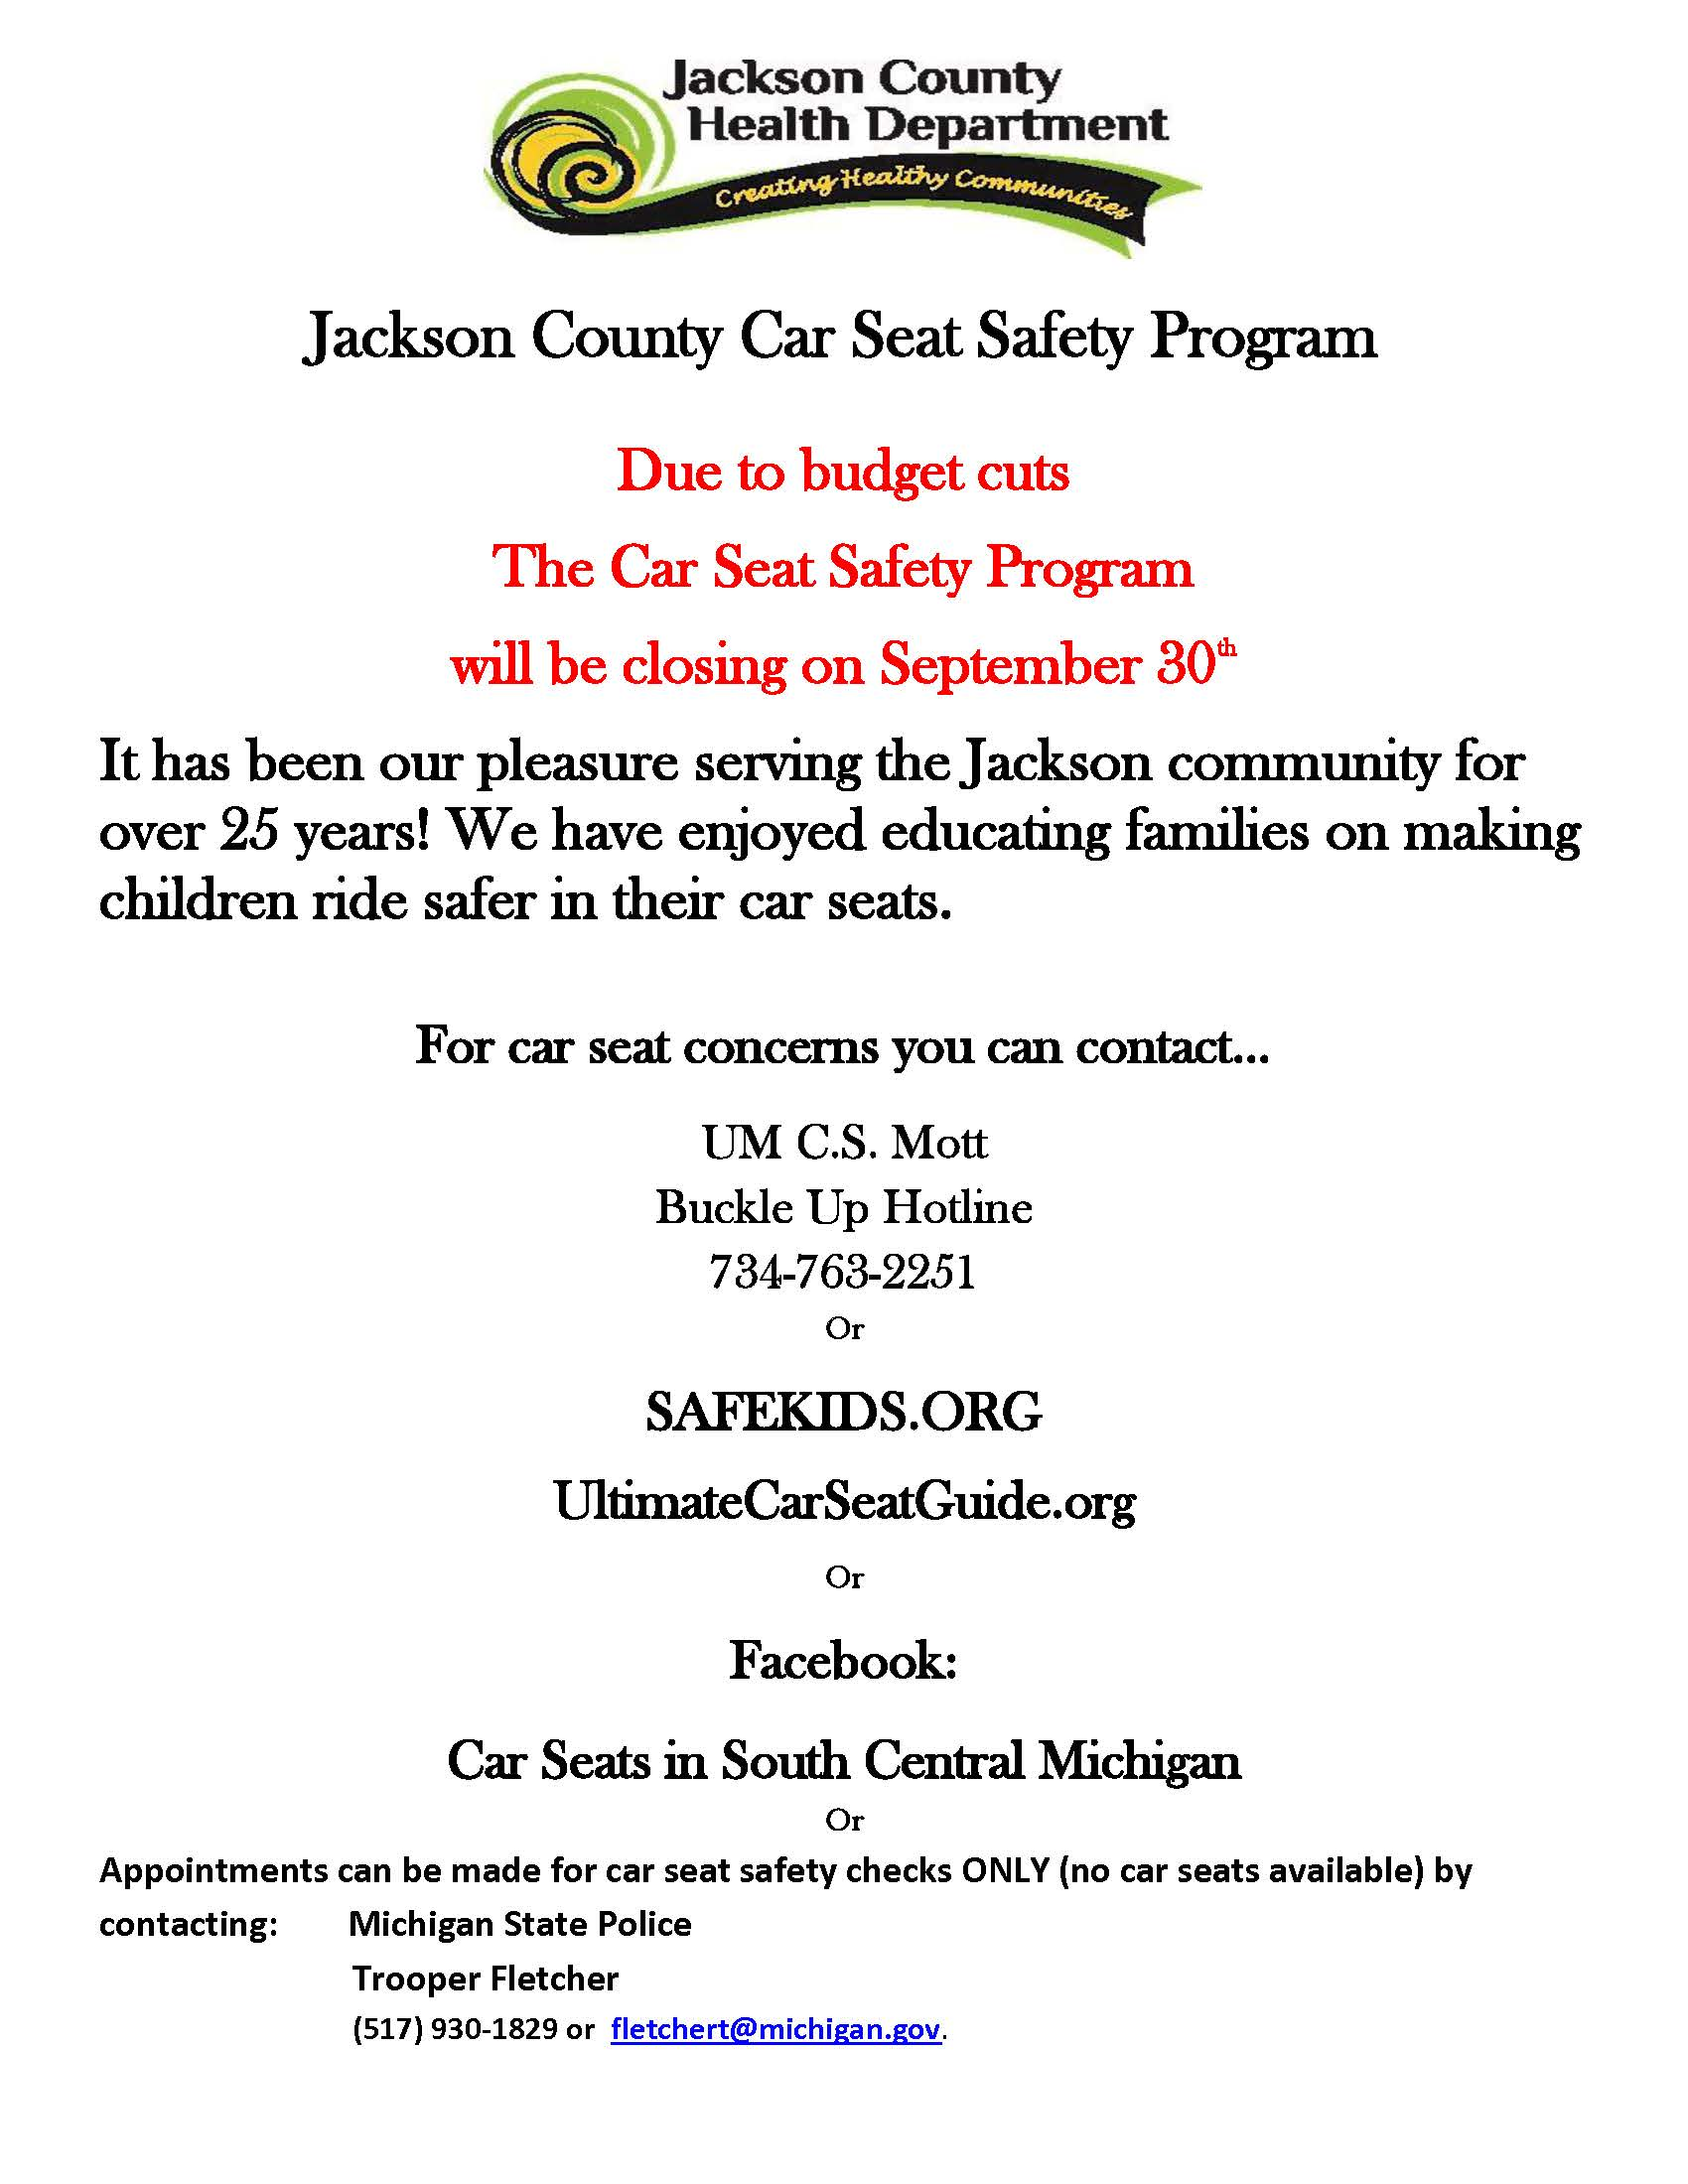 Child Passenger Safety closing